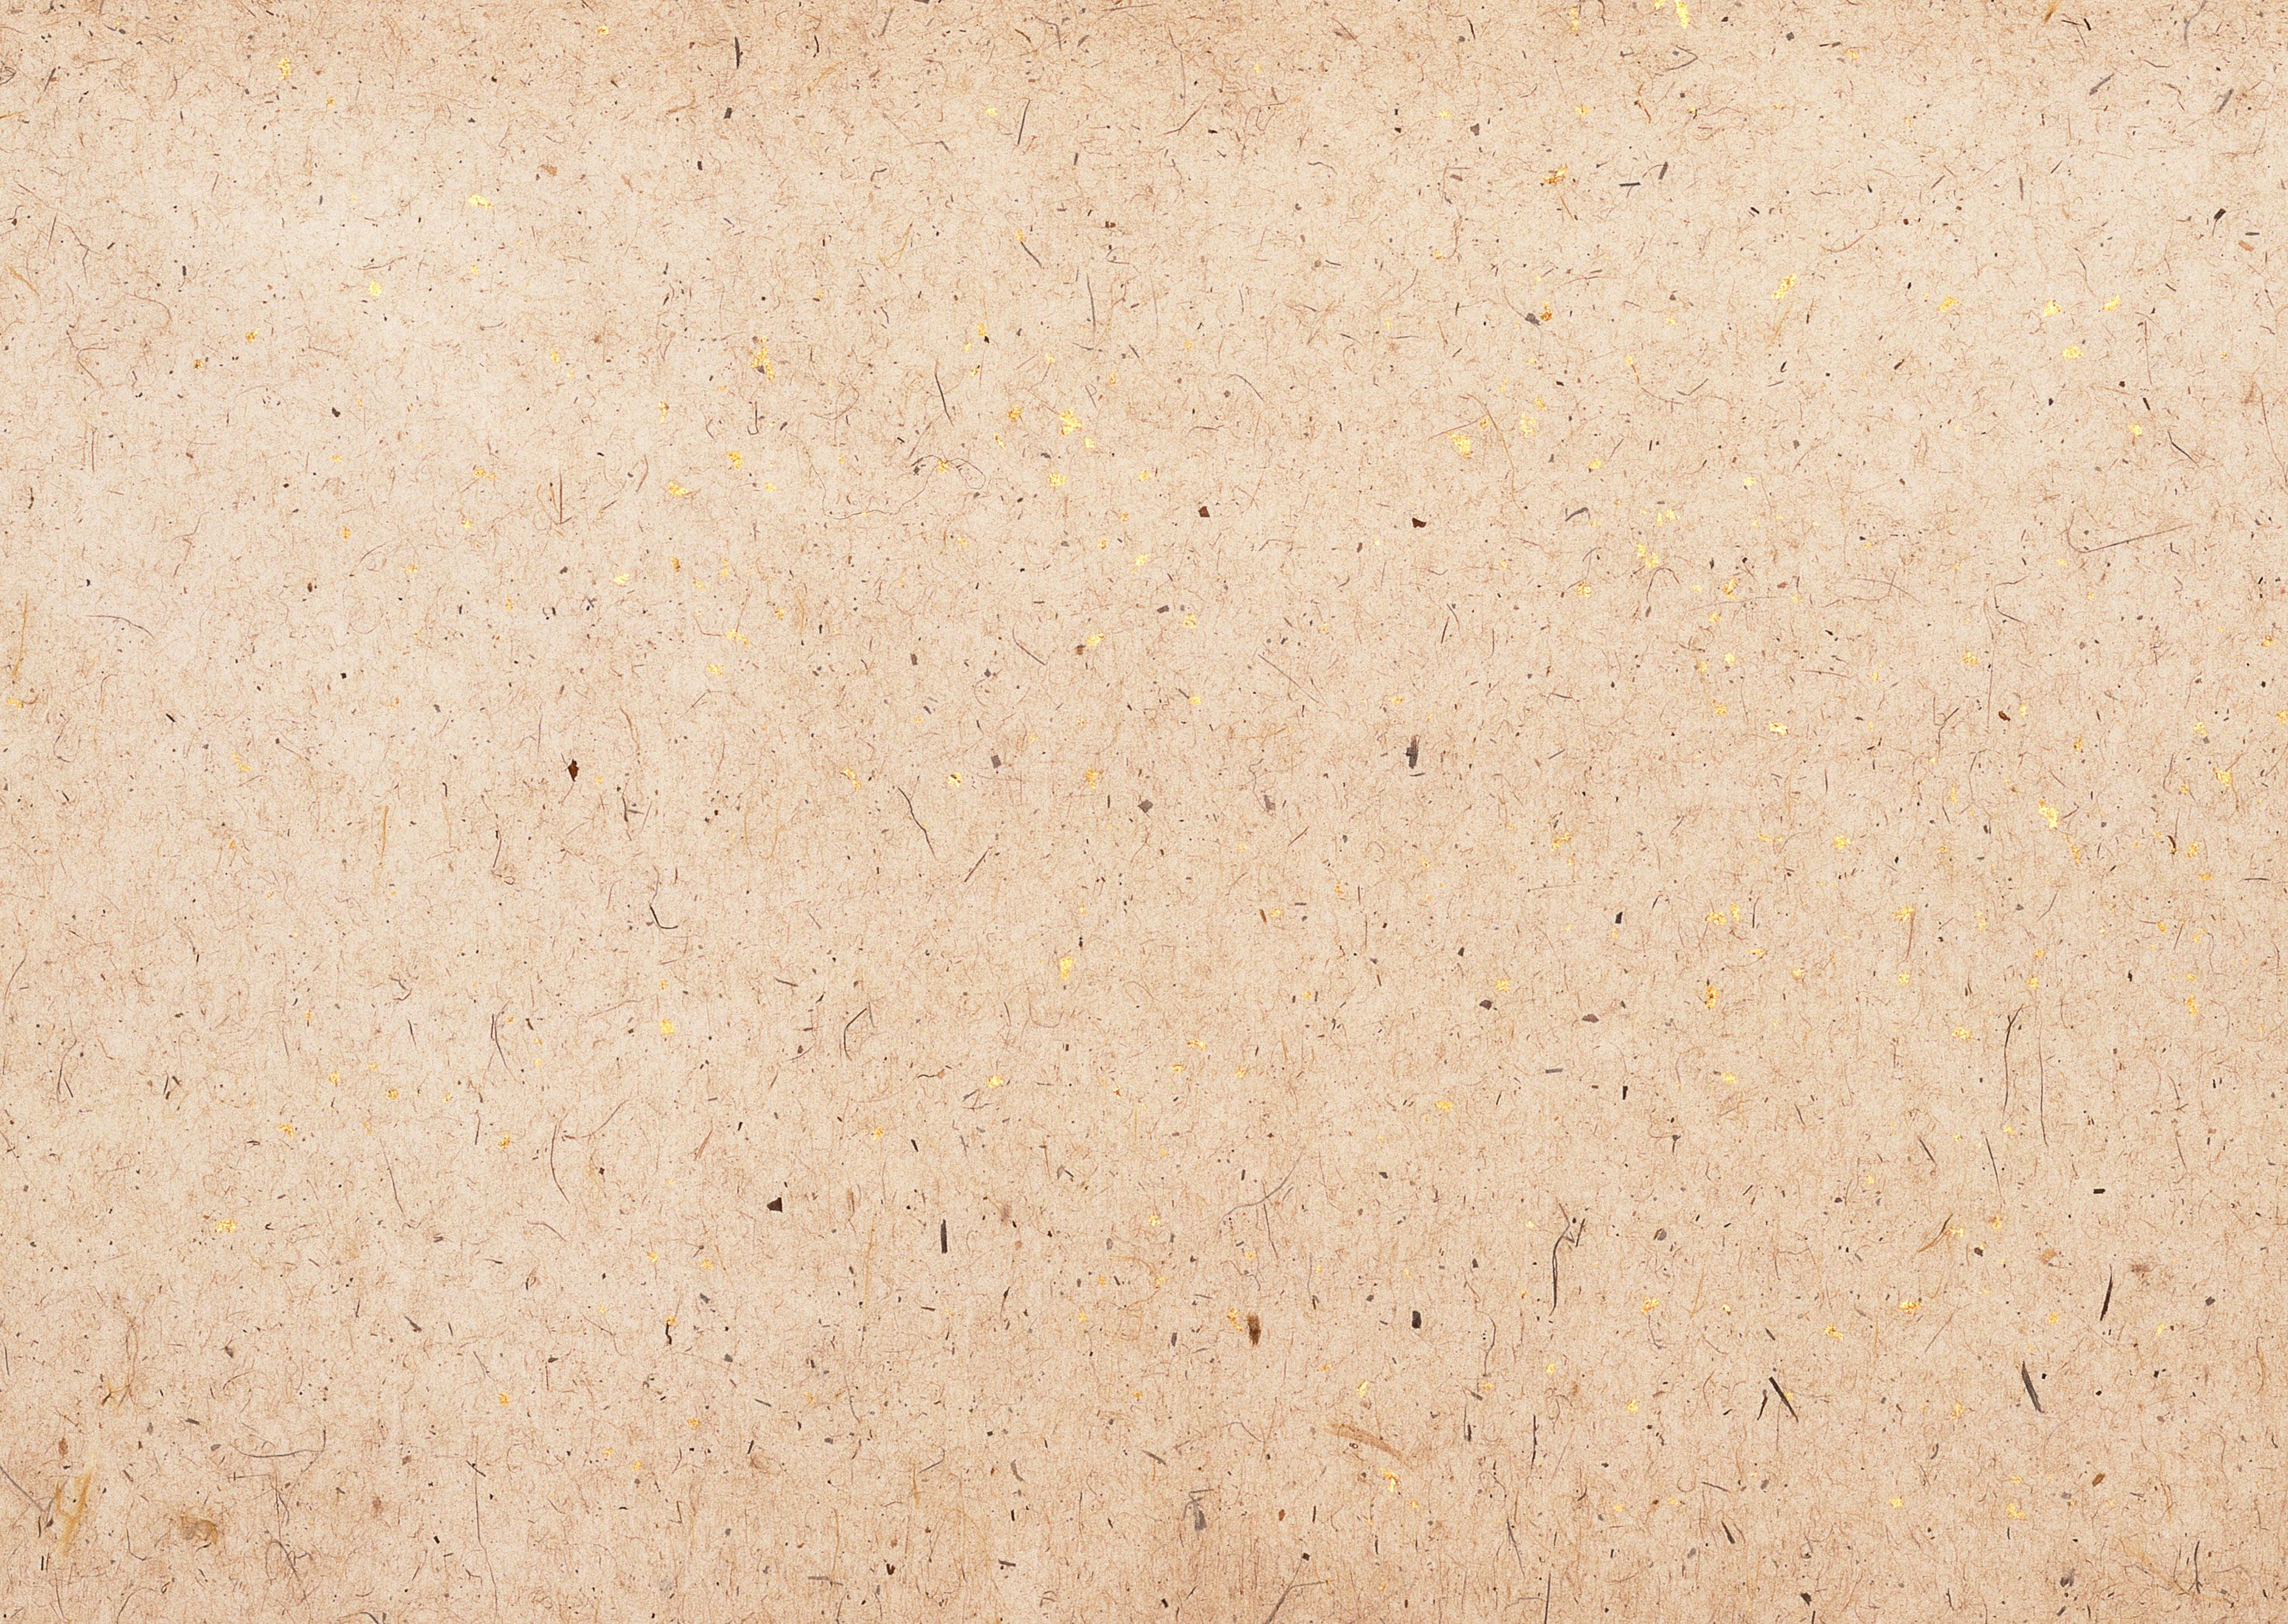 texture paper, paper texture, old battered paper, download photo ...